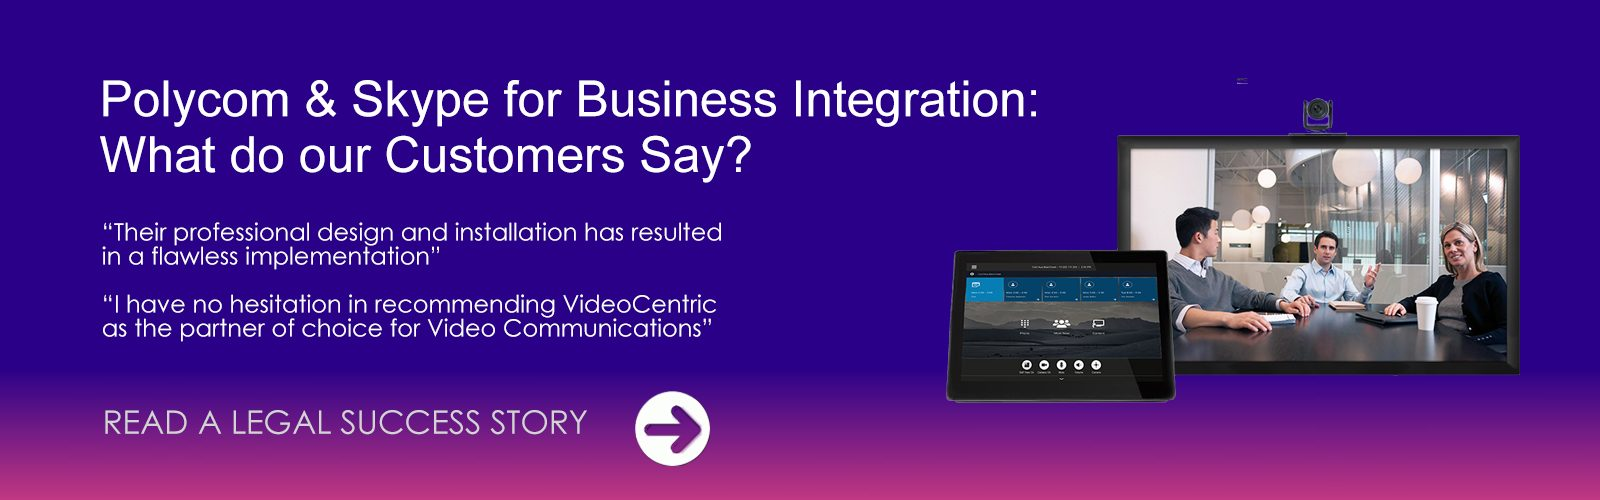 Polycom and Microsoft Integration - What do our Customers Say? Read a Legal Success Story.